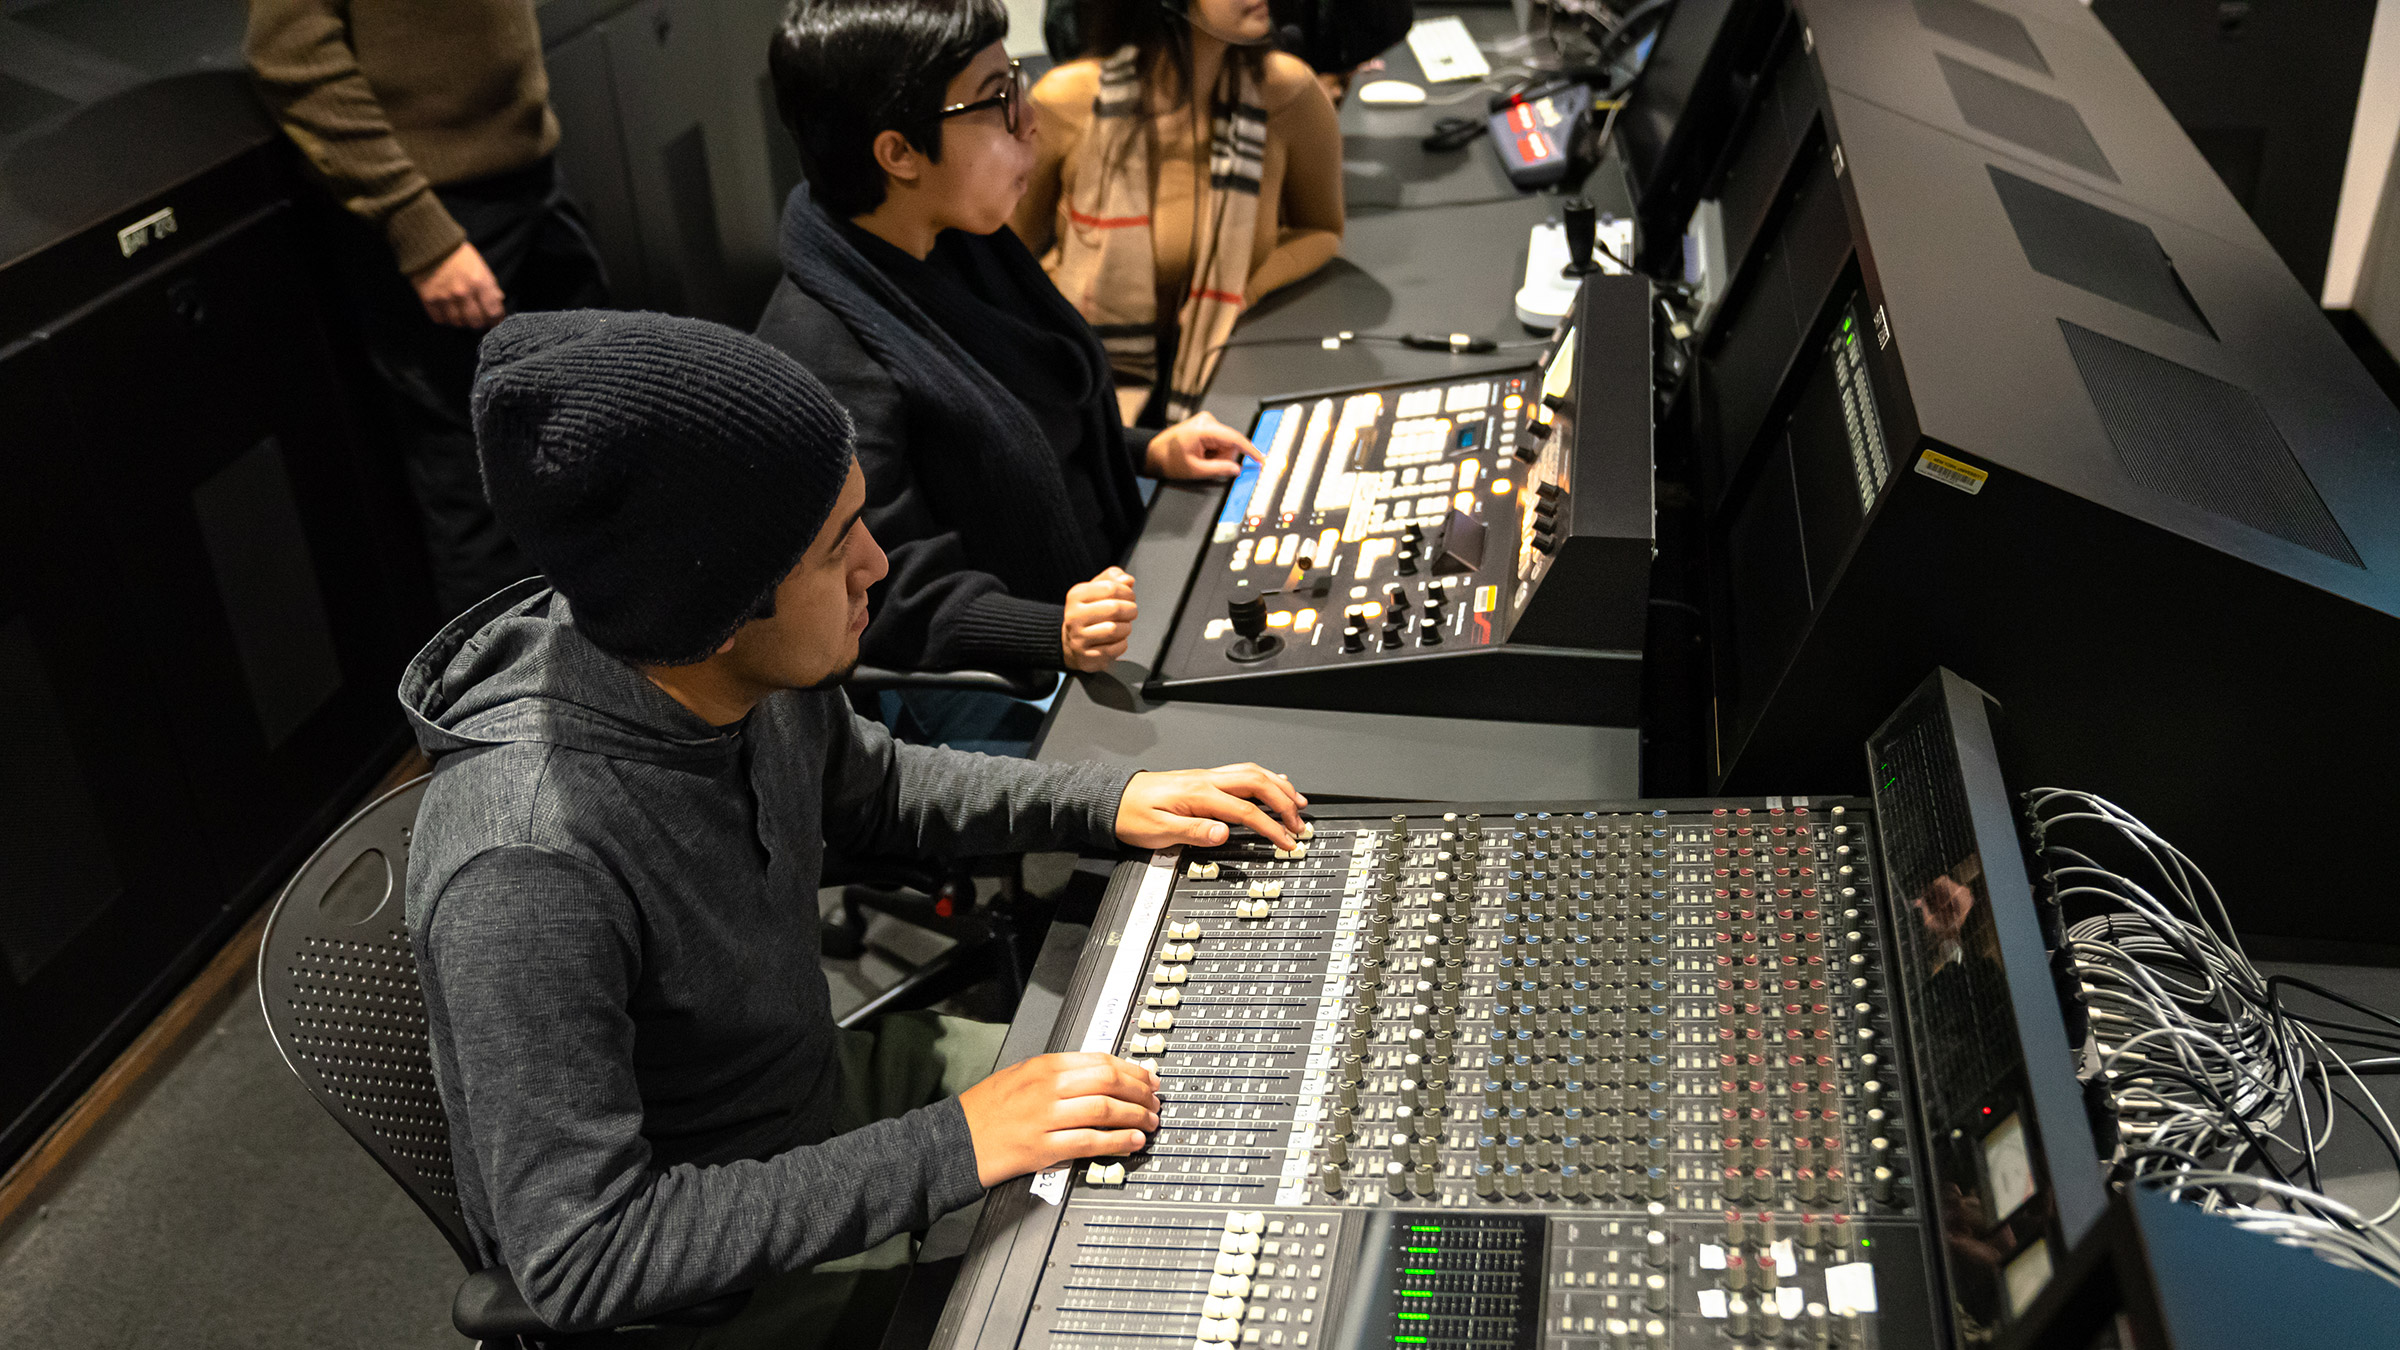 Student at Control Board